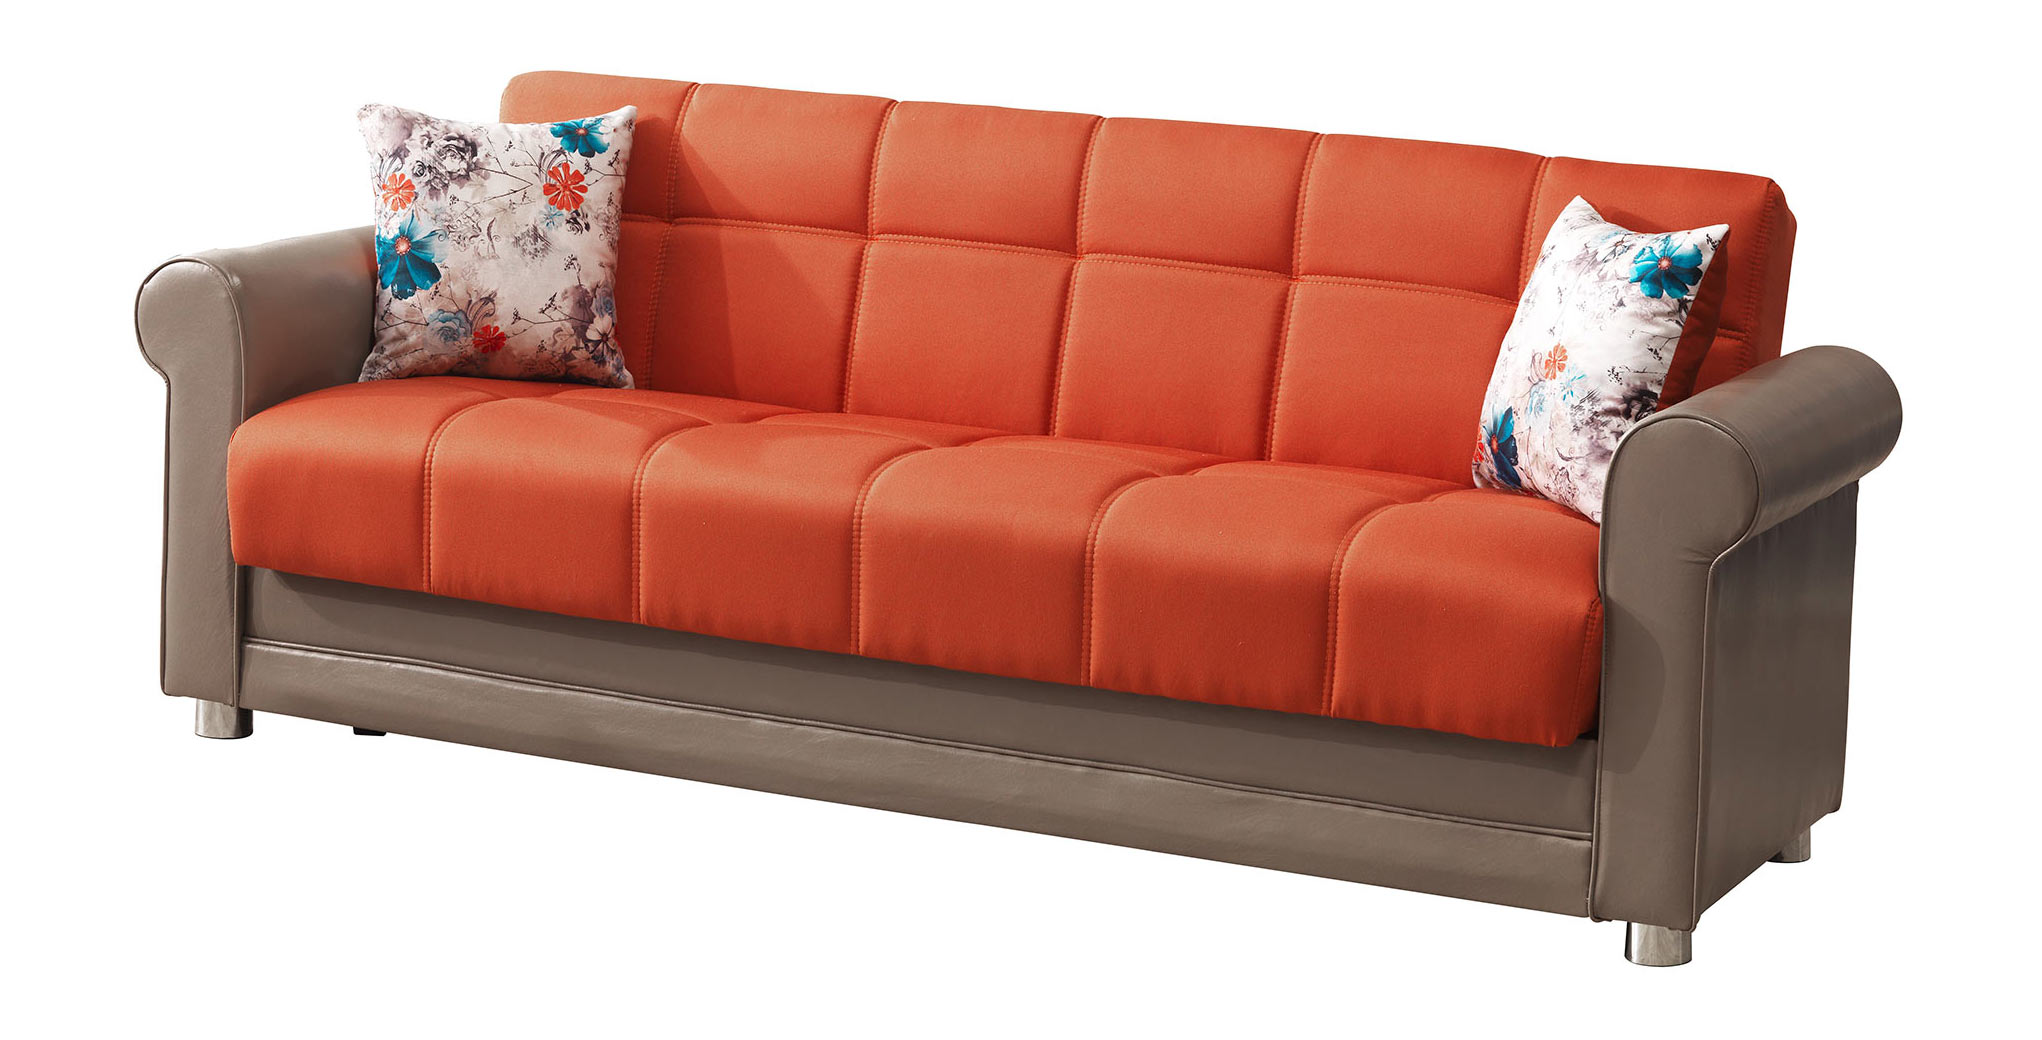 Avalon Prusa Orange Sofa by Casamode